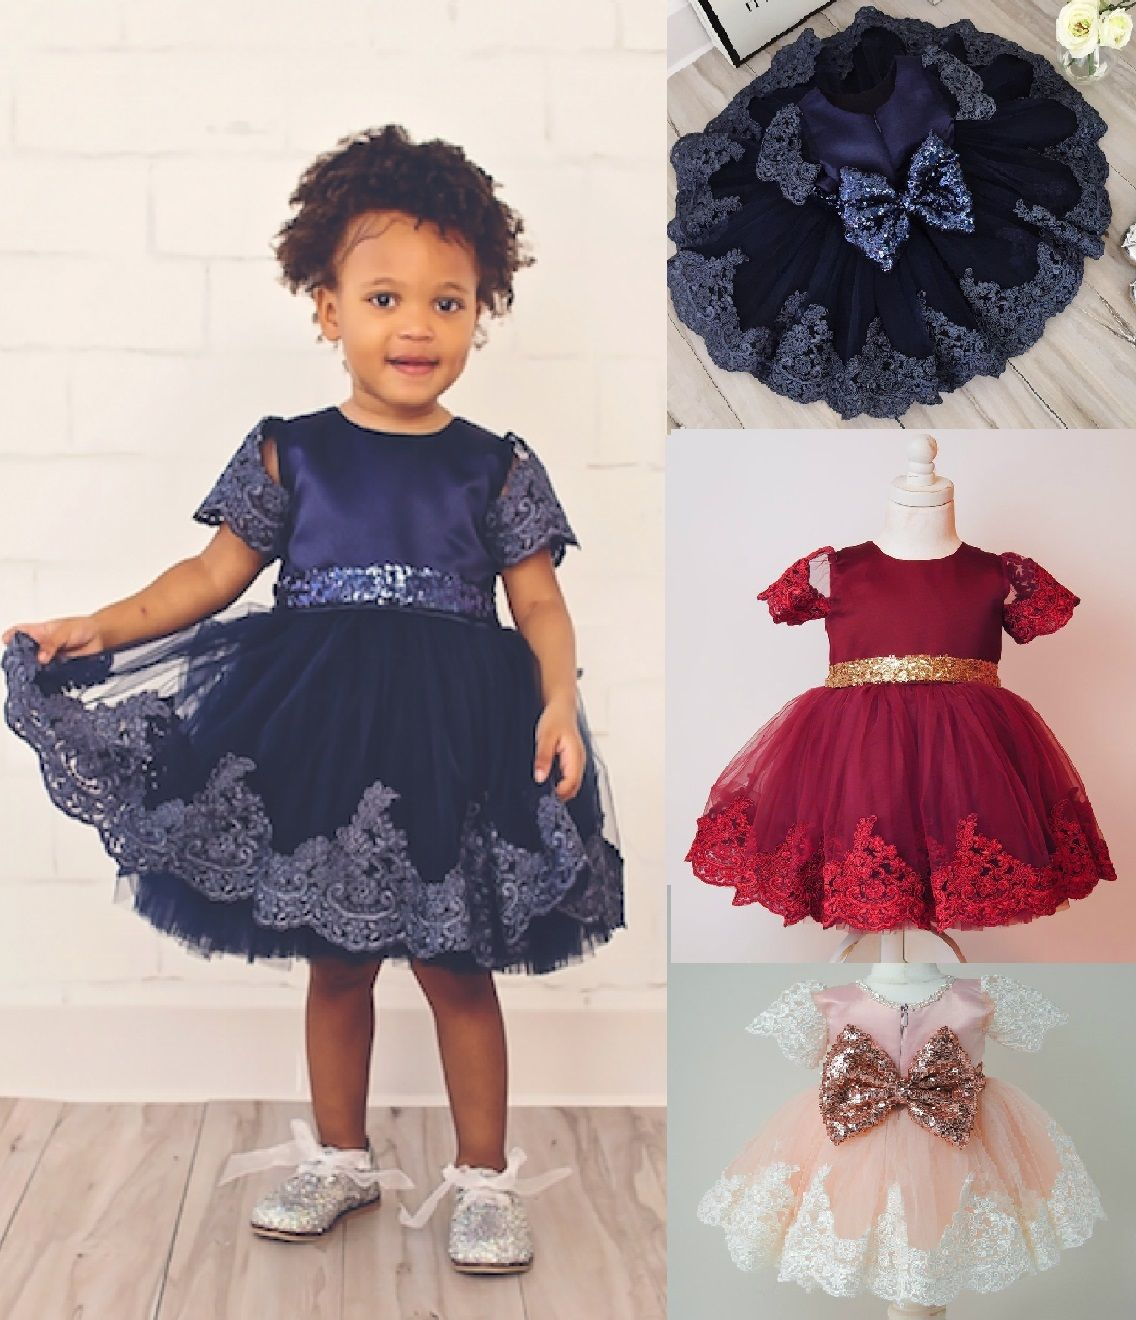 2017 New <font><b>Baby</b></font> Girls Princess <font><b>Dress</b></font> Clothes Short Sleeve Lace Bow Ball Gown Tutu Party <font><b>Dress</b></font> Toddler Kids <font><b>Fancy</b></font> <font><b>Dress</b></font> 0-7Y image